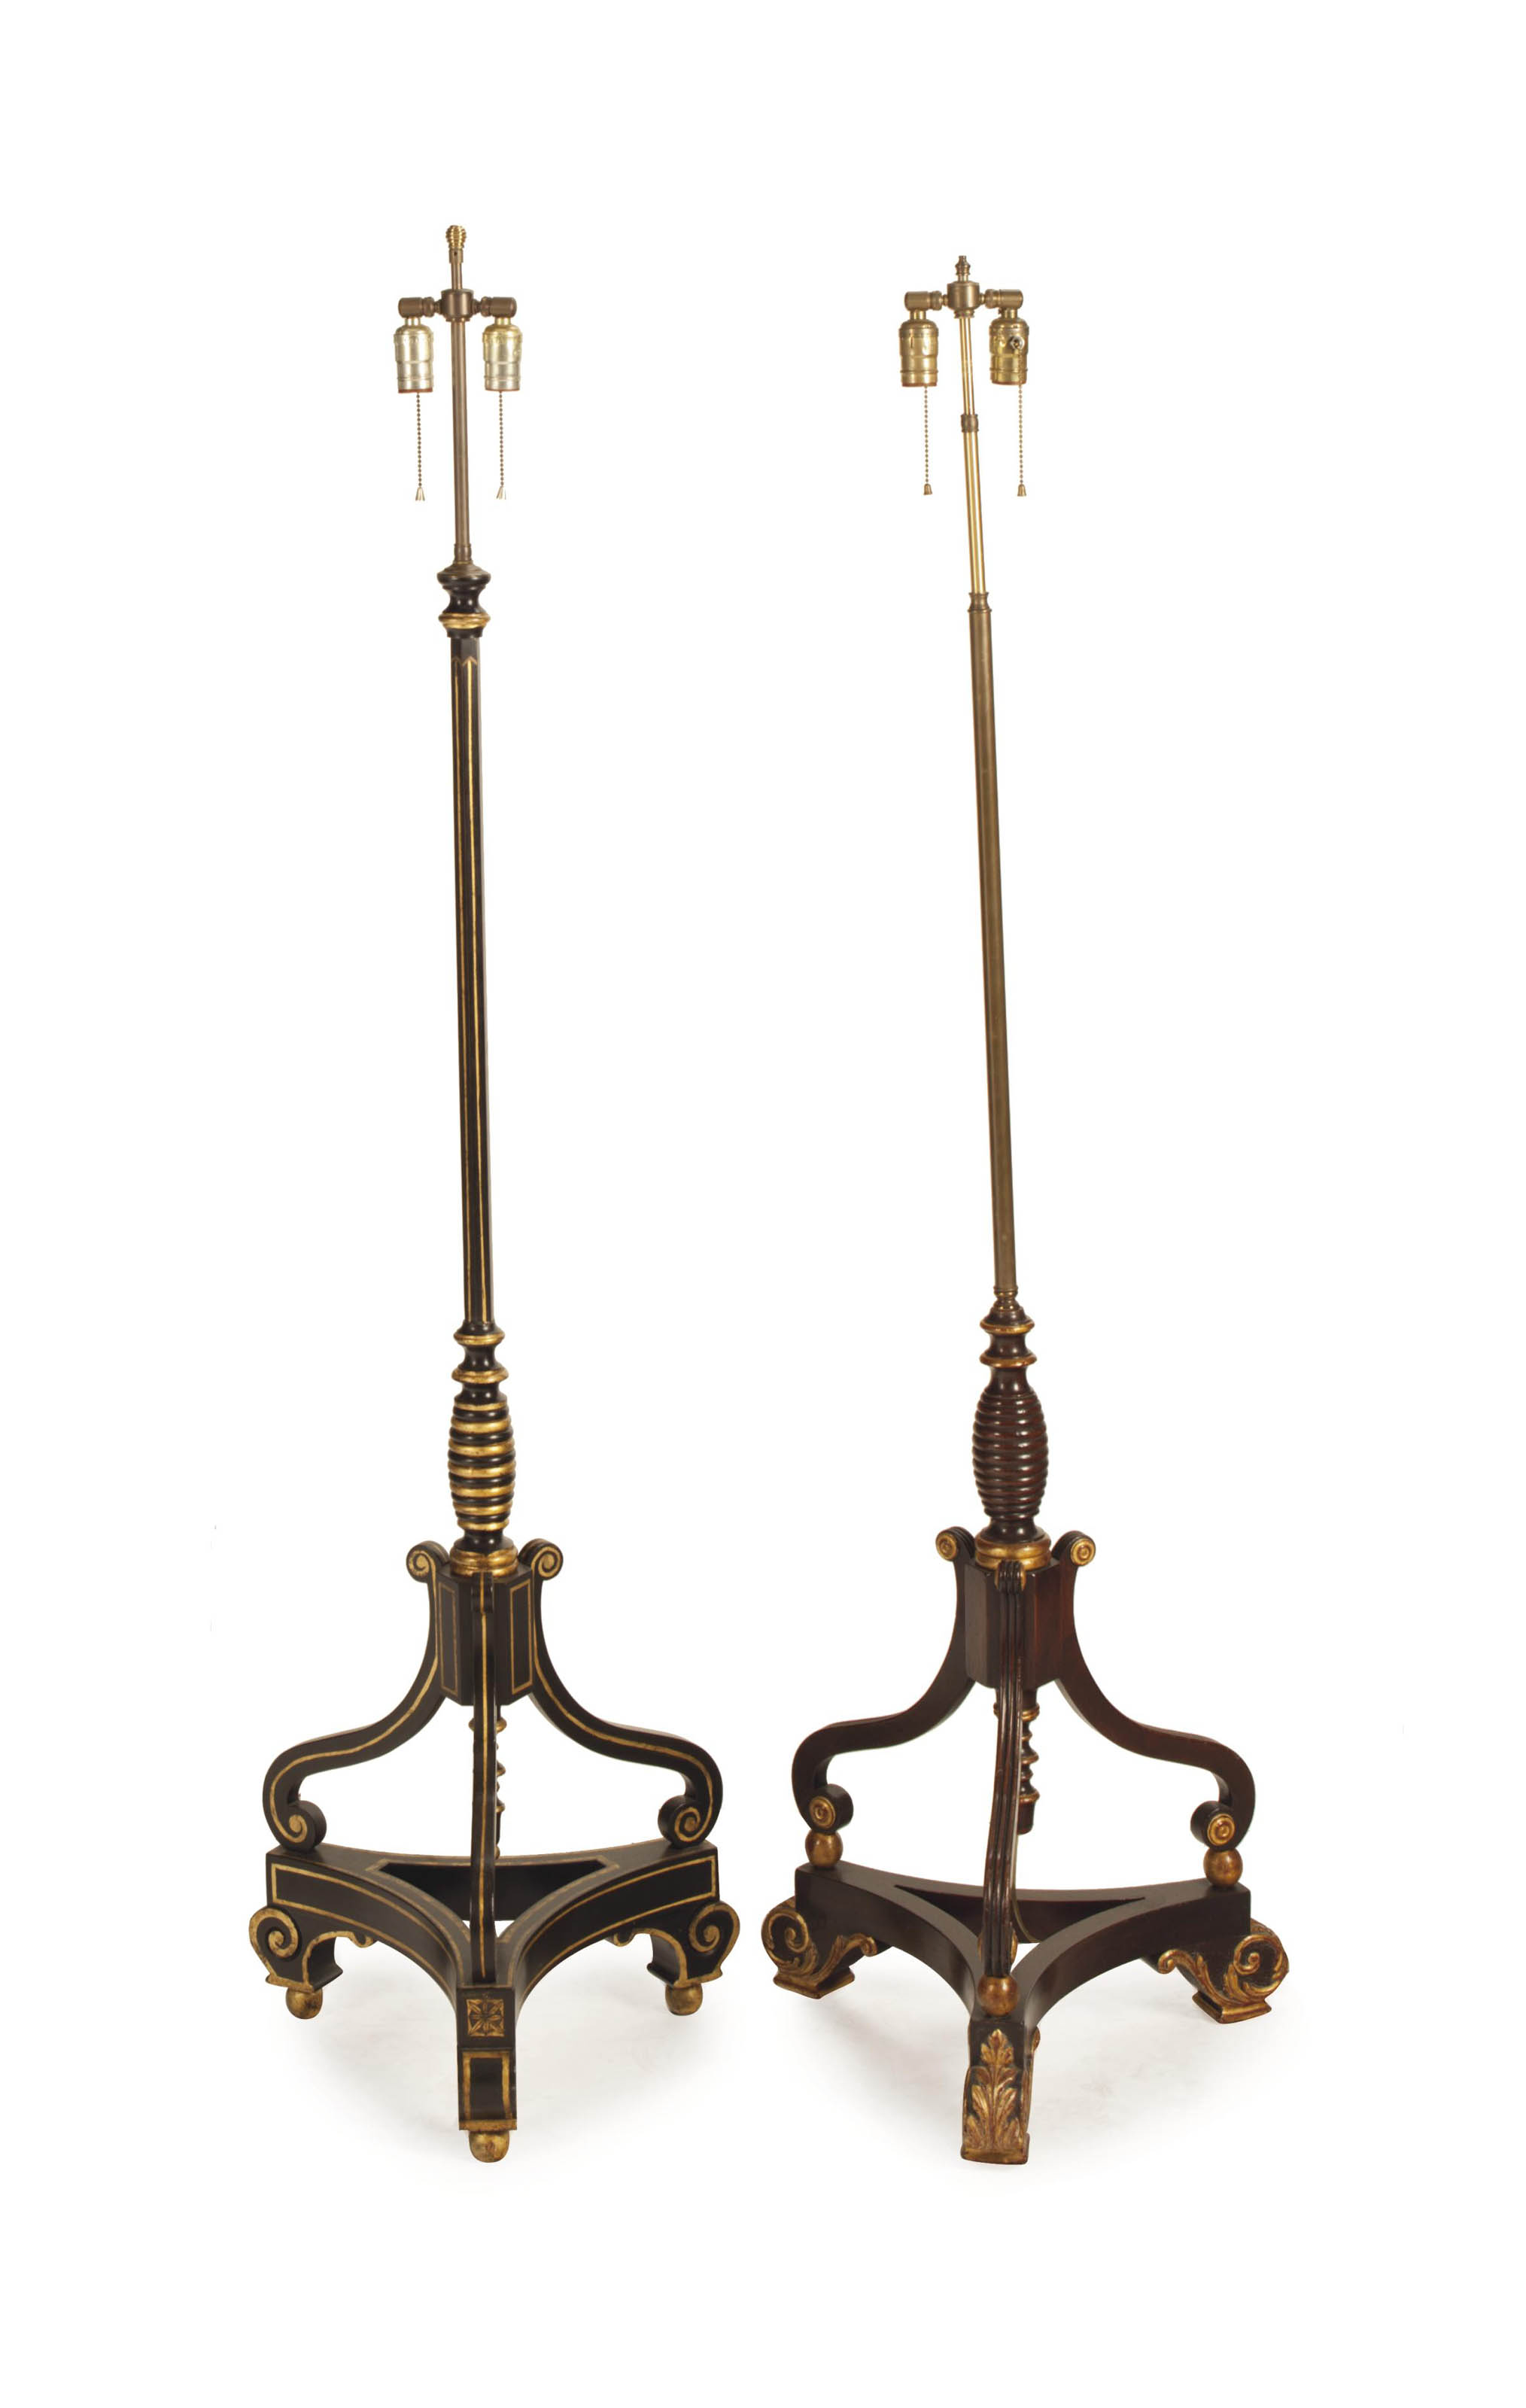 AN ENGLISH EBONIZED AND PARCEL